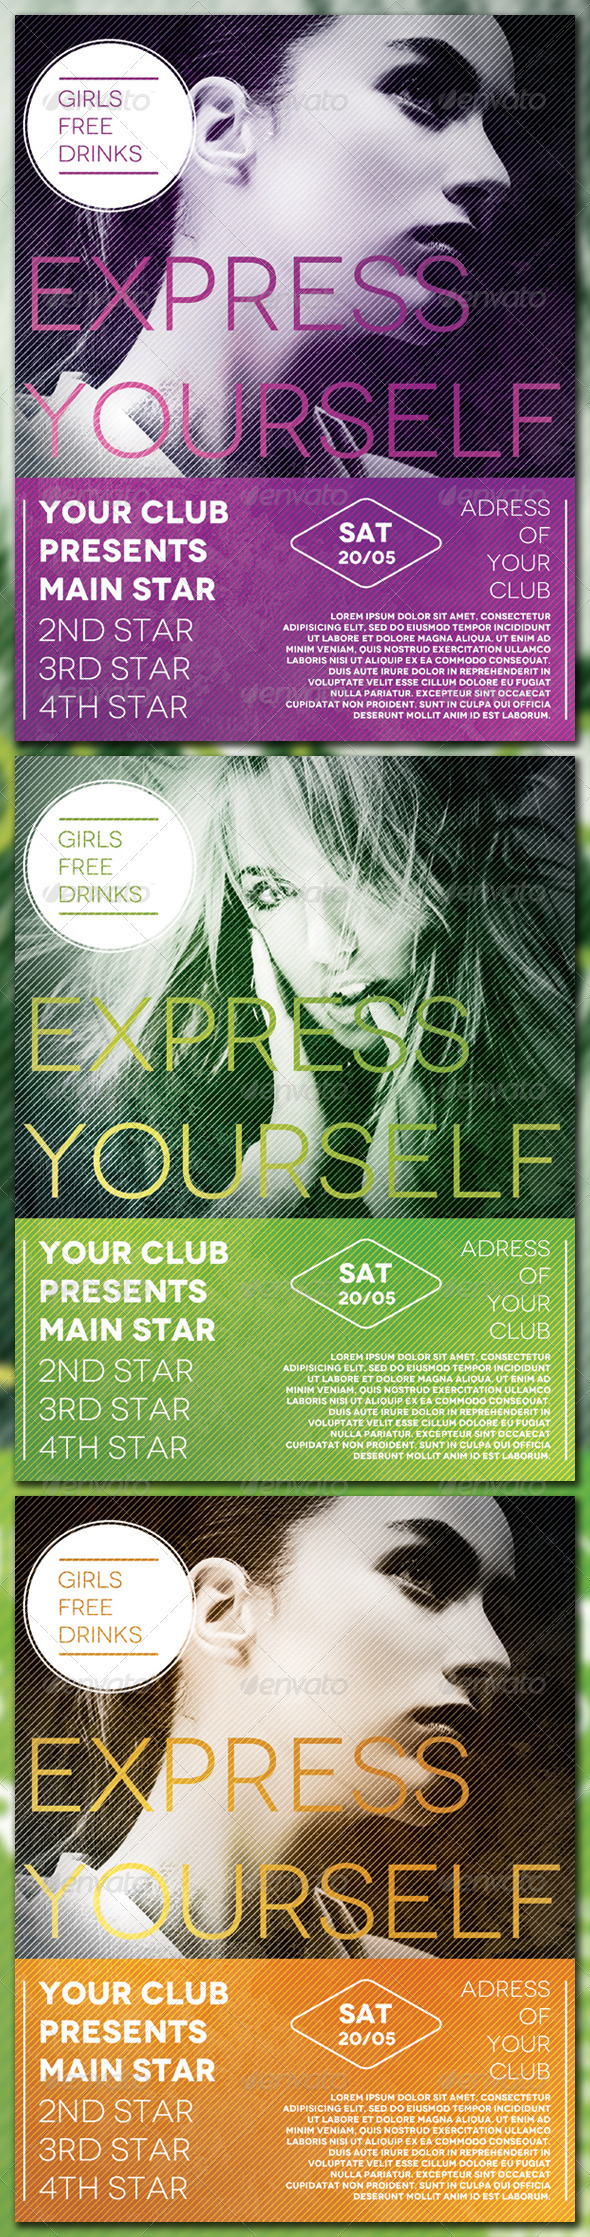 Graphic River Express Yourself Flyer Print Templates -  Flyers 1921832